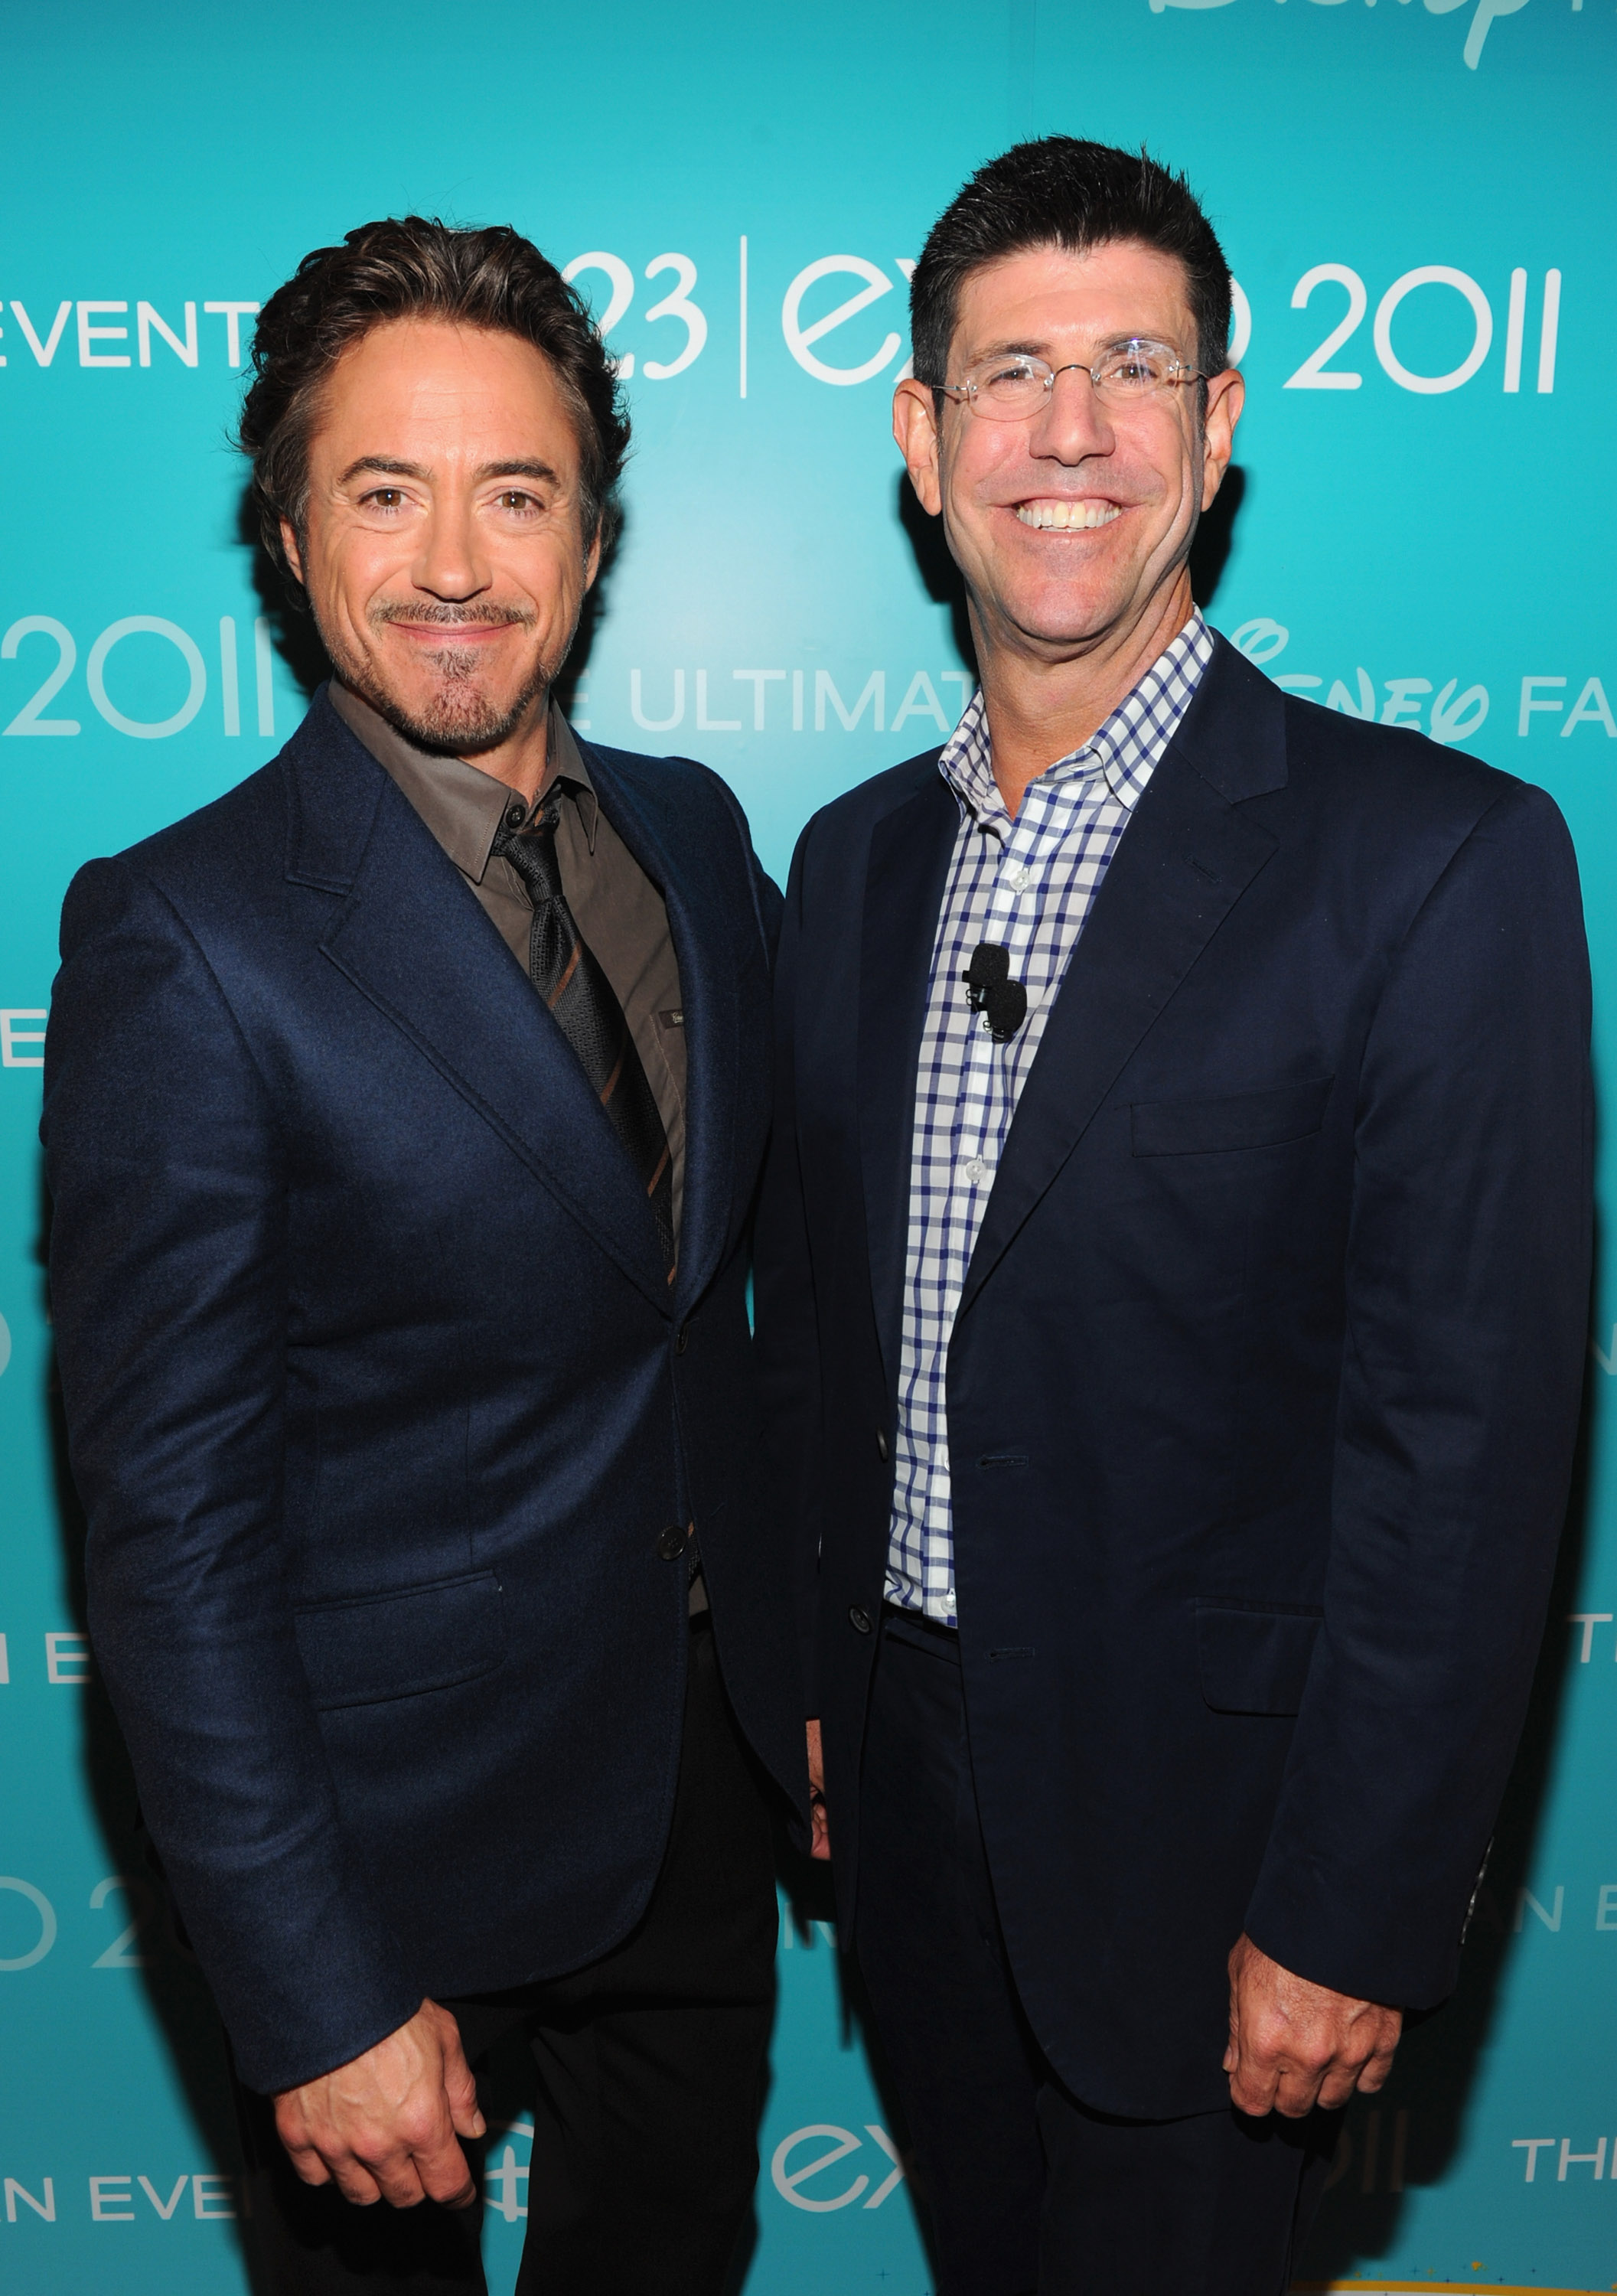 Robert Downey Jr. caught up with Disney Chairman Rich Ross backstage.